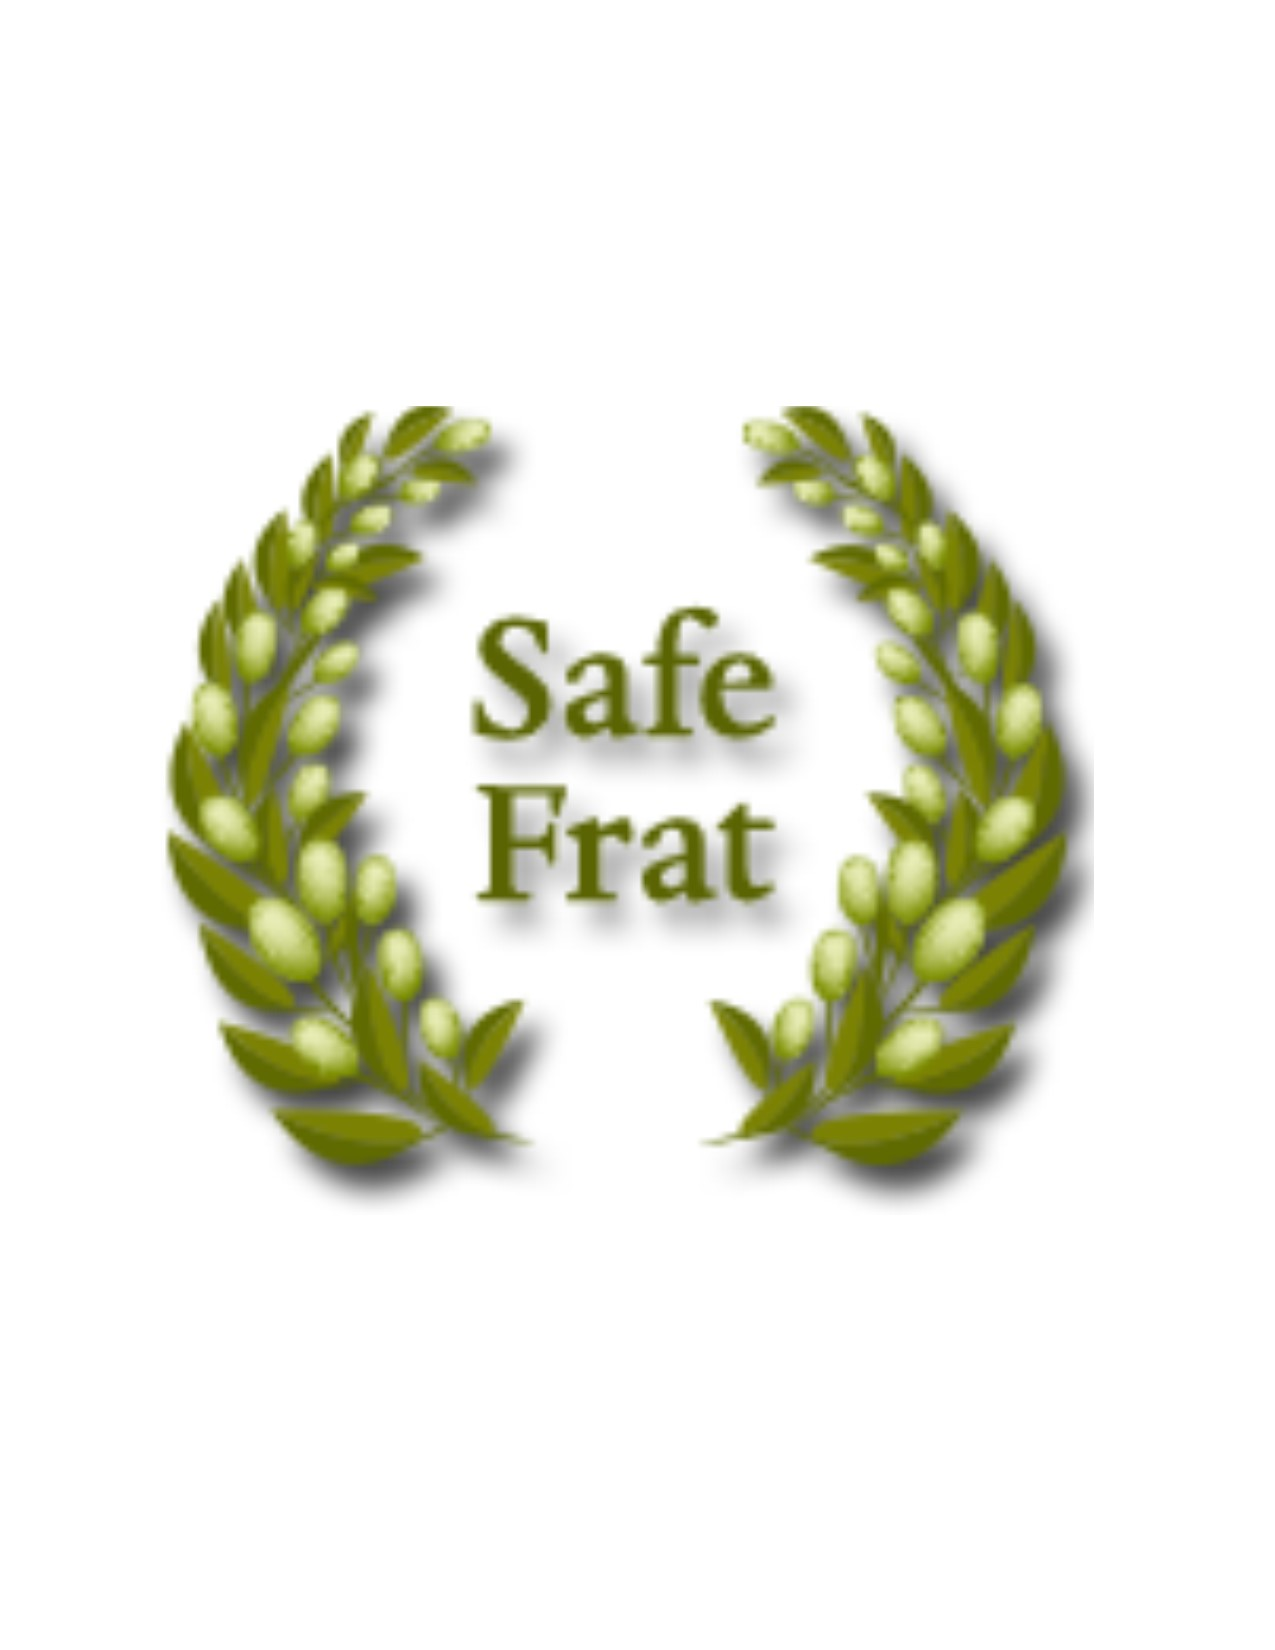 Safefrat Wreath Logo